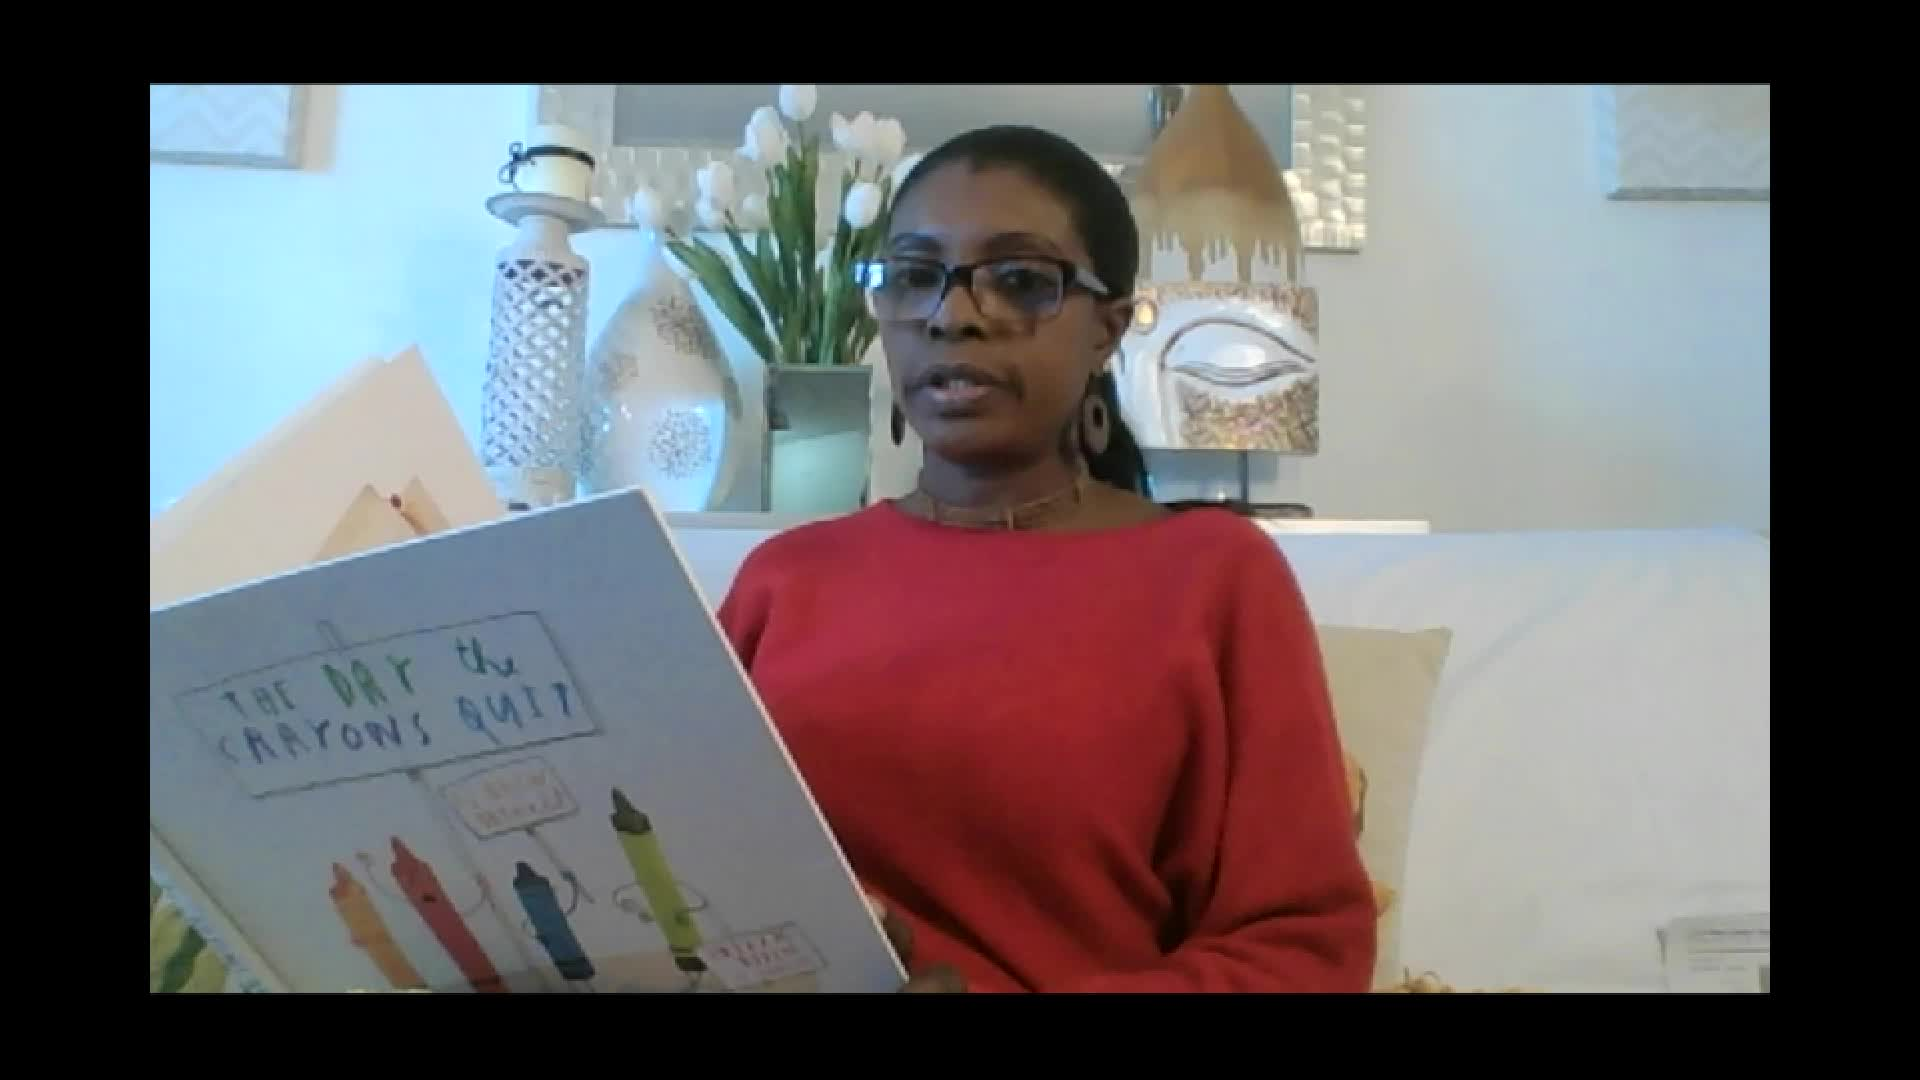 Bedtime story: The Day the Crayons Quit, by Drew Daywalt